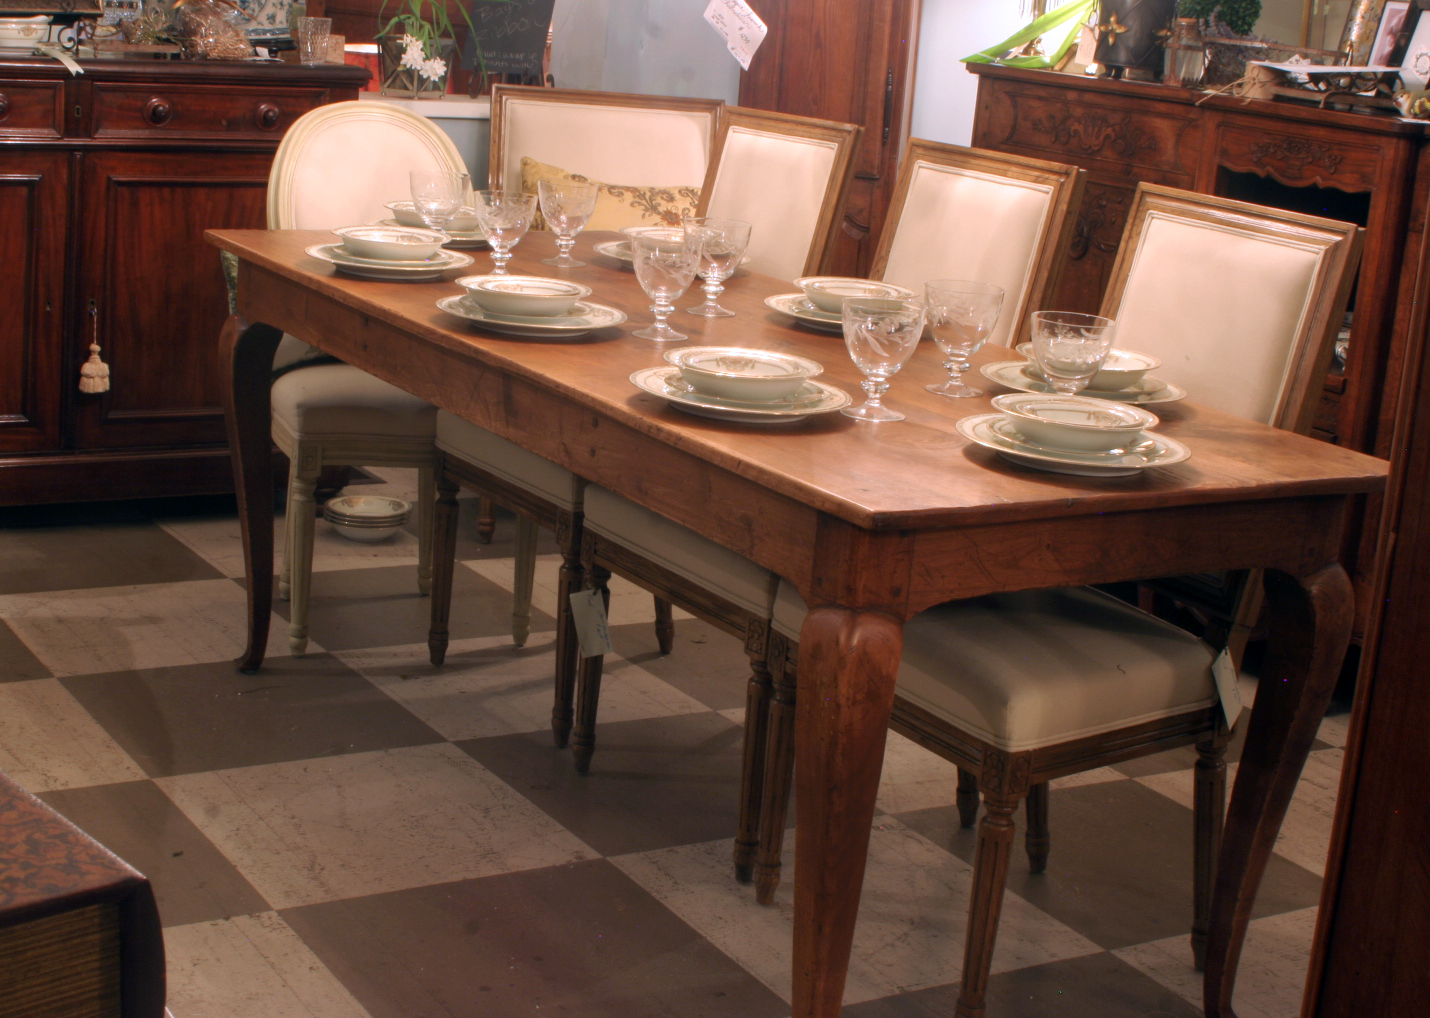 Great 318 French Country Extension Farmhouse Table With Leaves In Antique Finish